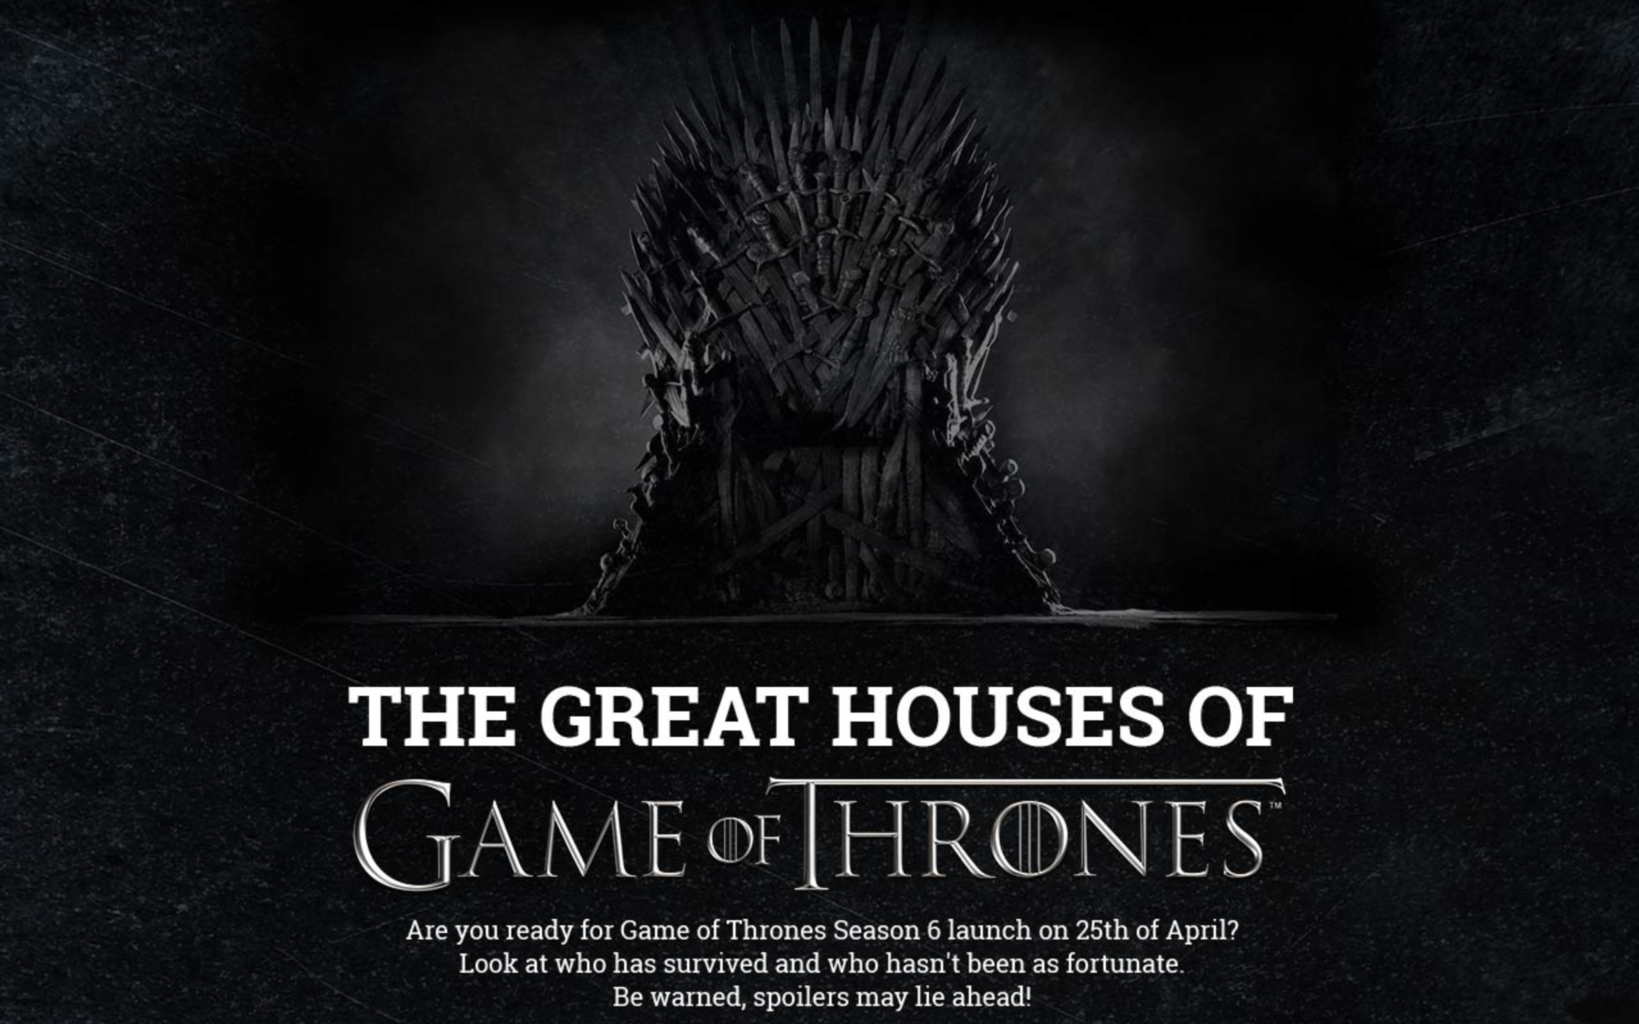 The Great Houses of Game of Thrones